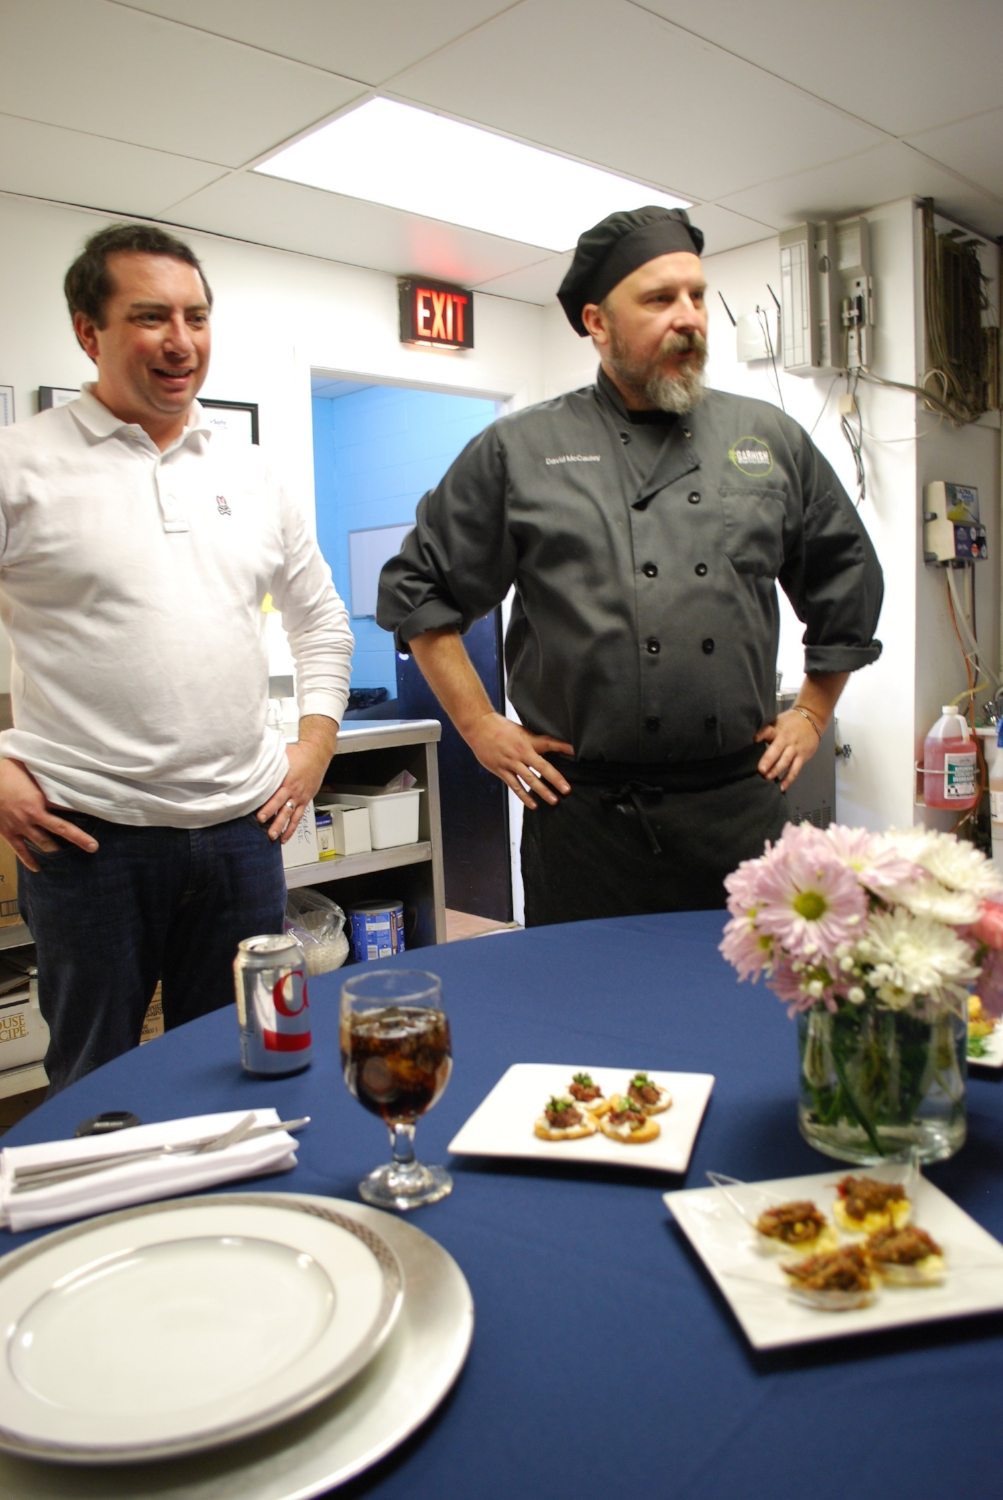 Beginning with passed hors devours, Louis and executive chef, David McCauley, presented their ideas and described the food preparation in detail.